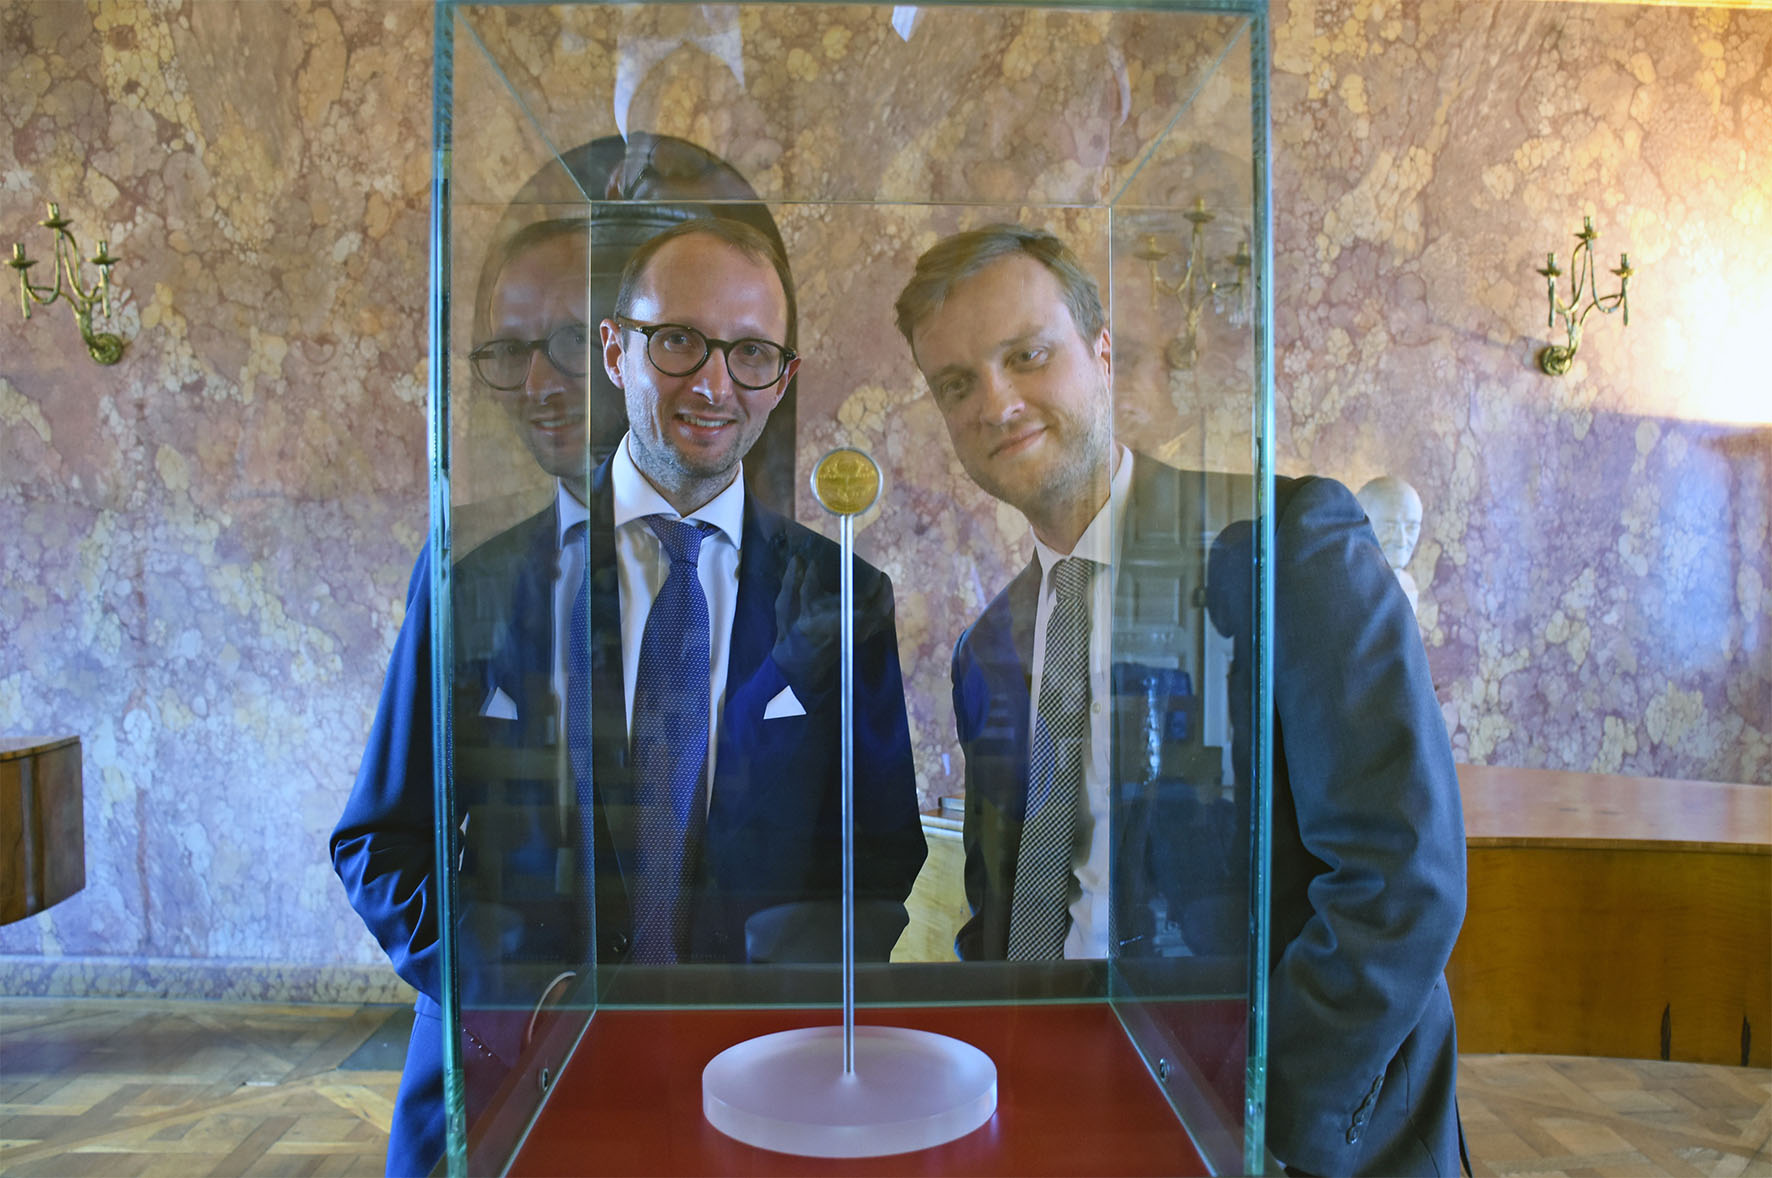 Dr. Sebastian Dohe (r.), custodian of art and artisan craftwork until 1650, Klassik Stiftung Weimar is excited about the addition to the collection, passed by Ulrich Künker (l.).